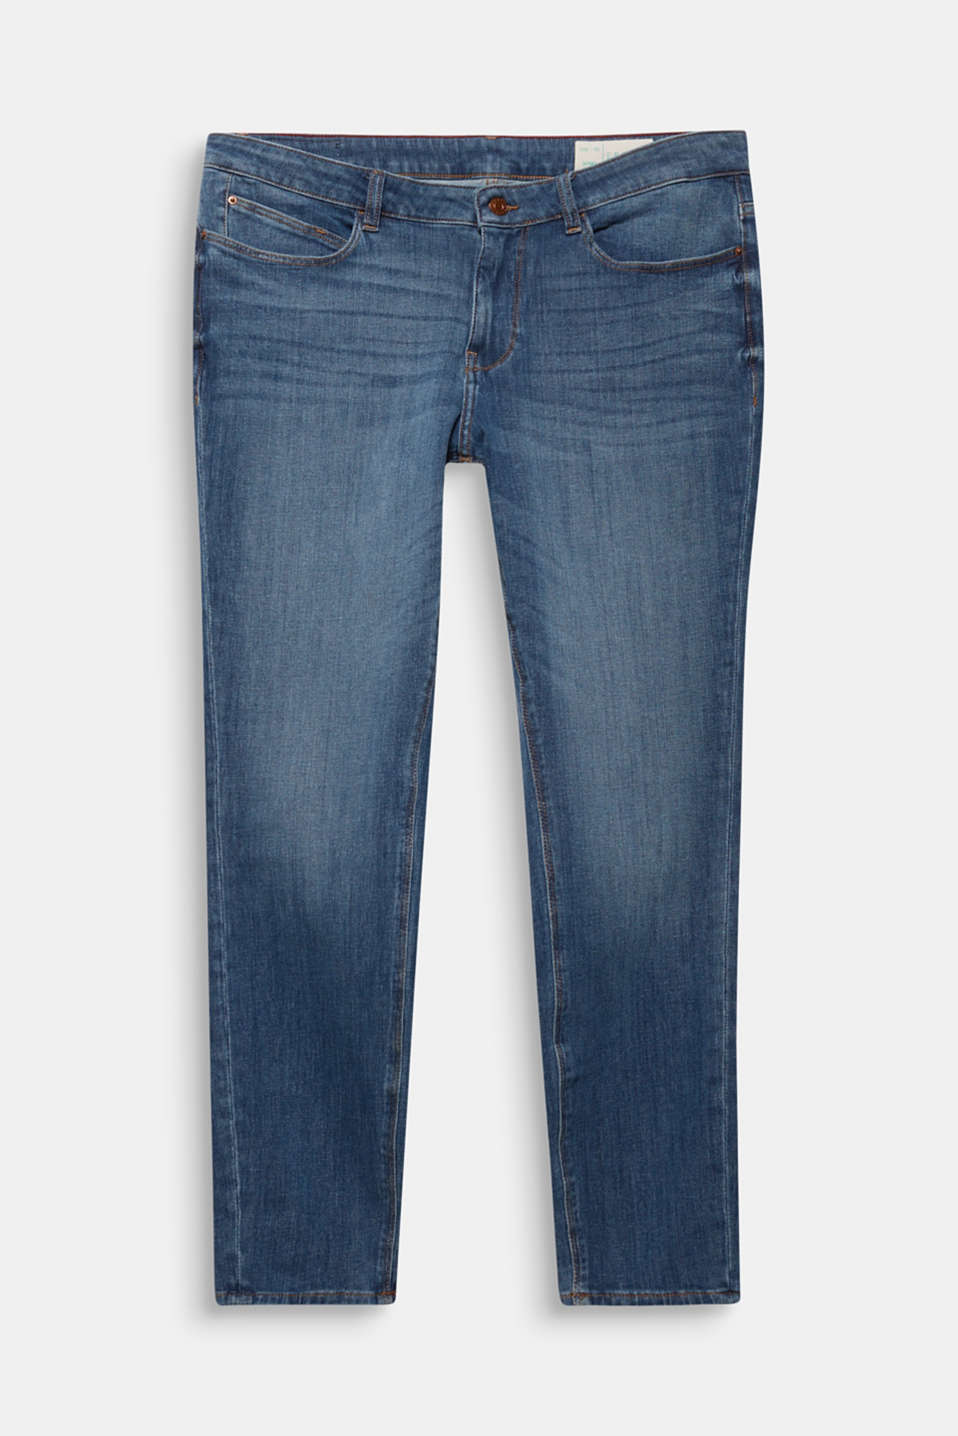 CURVY shaping jeans, BLUE MEDIUM WASH, detail image number 7